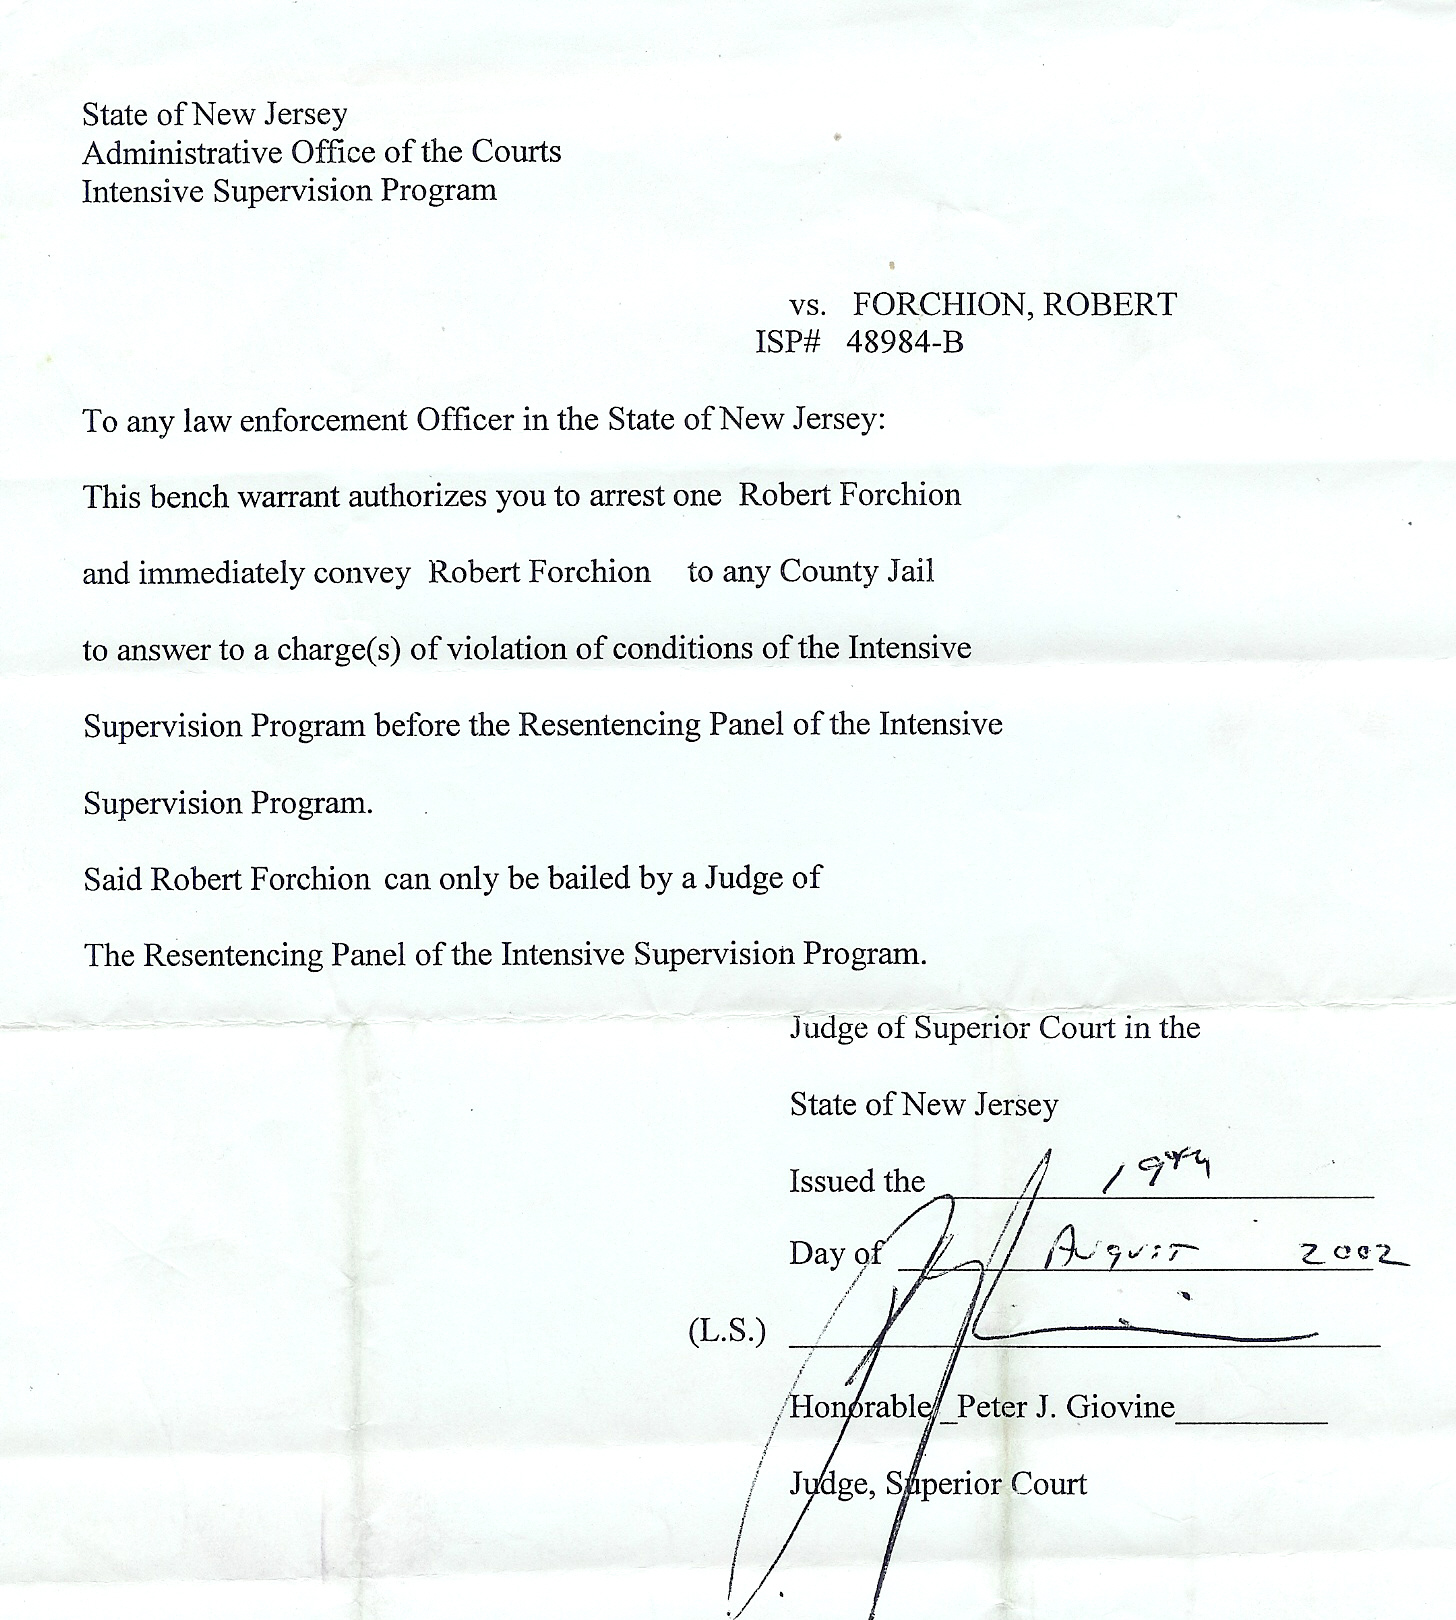 Sample Letter To Judge For Early Release Of Probation